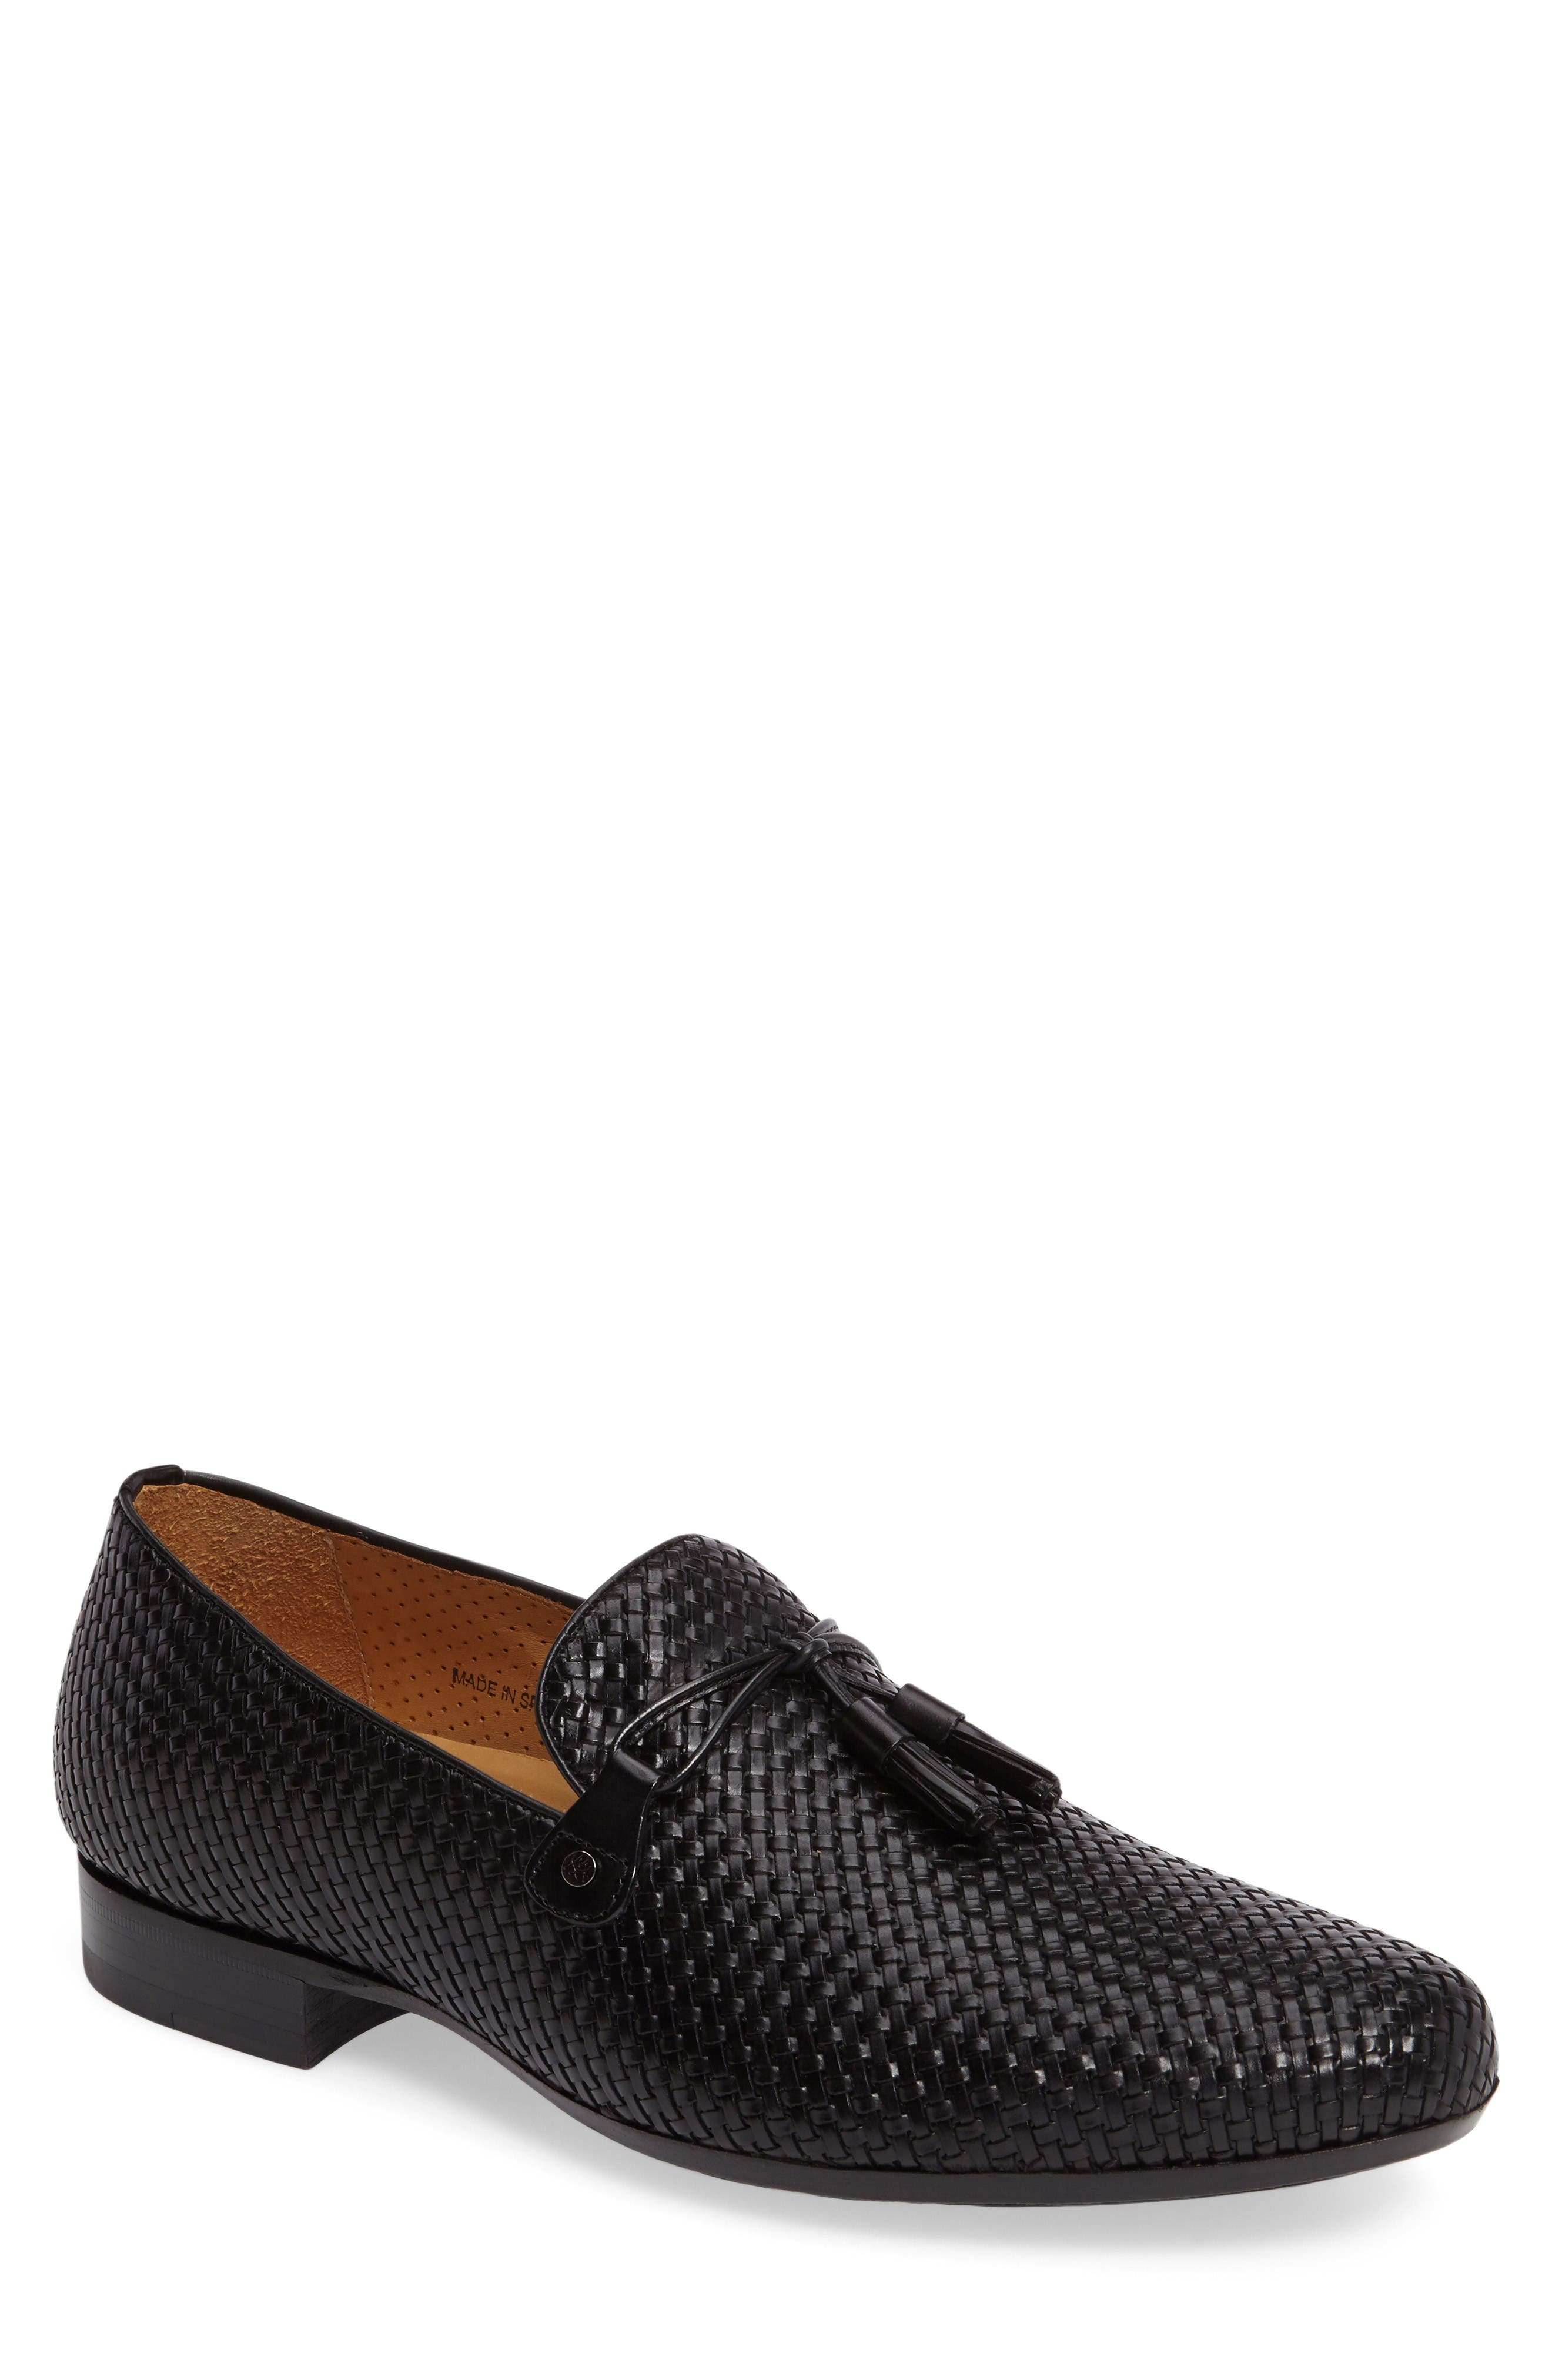 Turning Woven Tassel Loafer,                             Main thumbnail 1, color,                             Black Leather